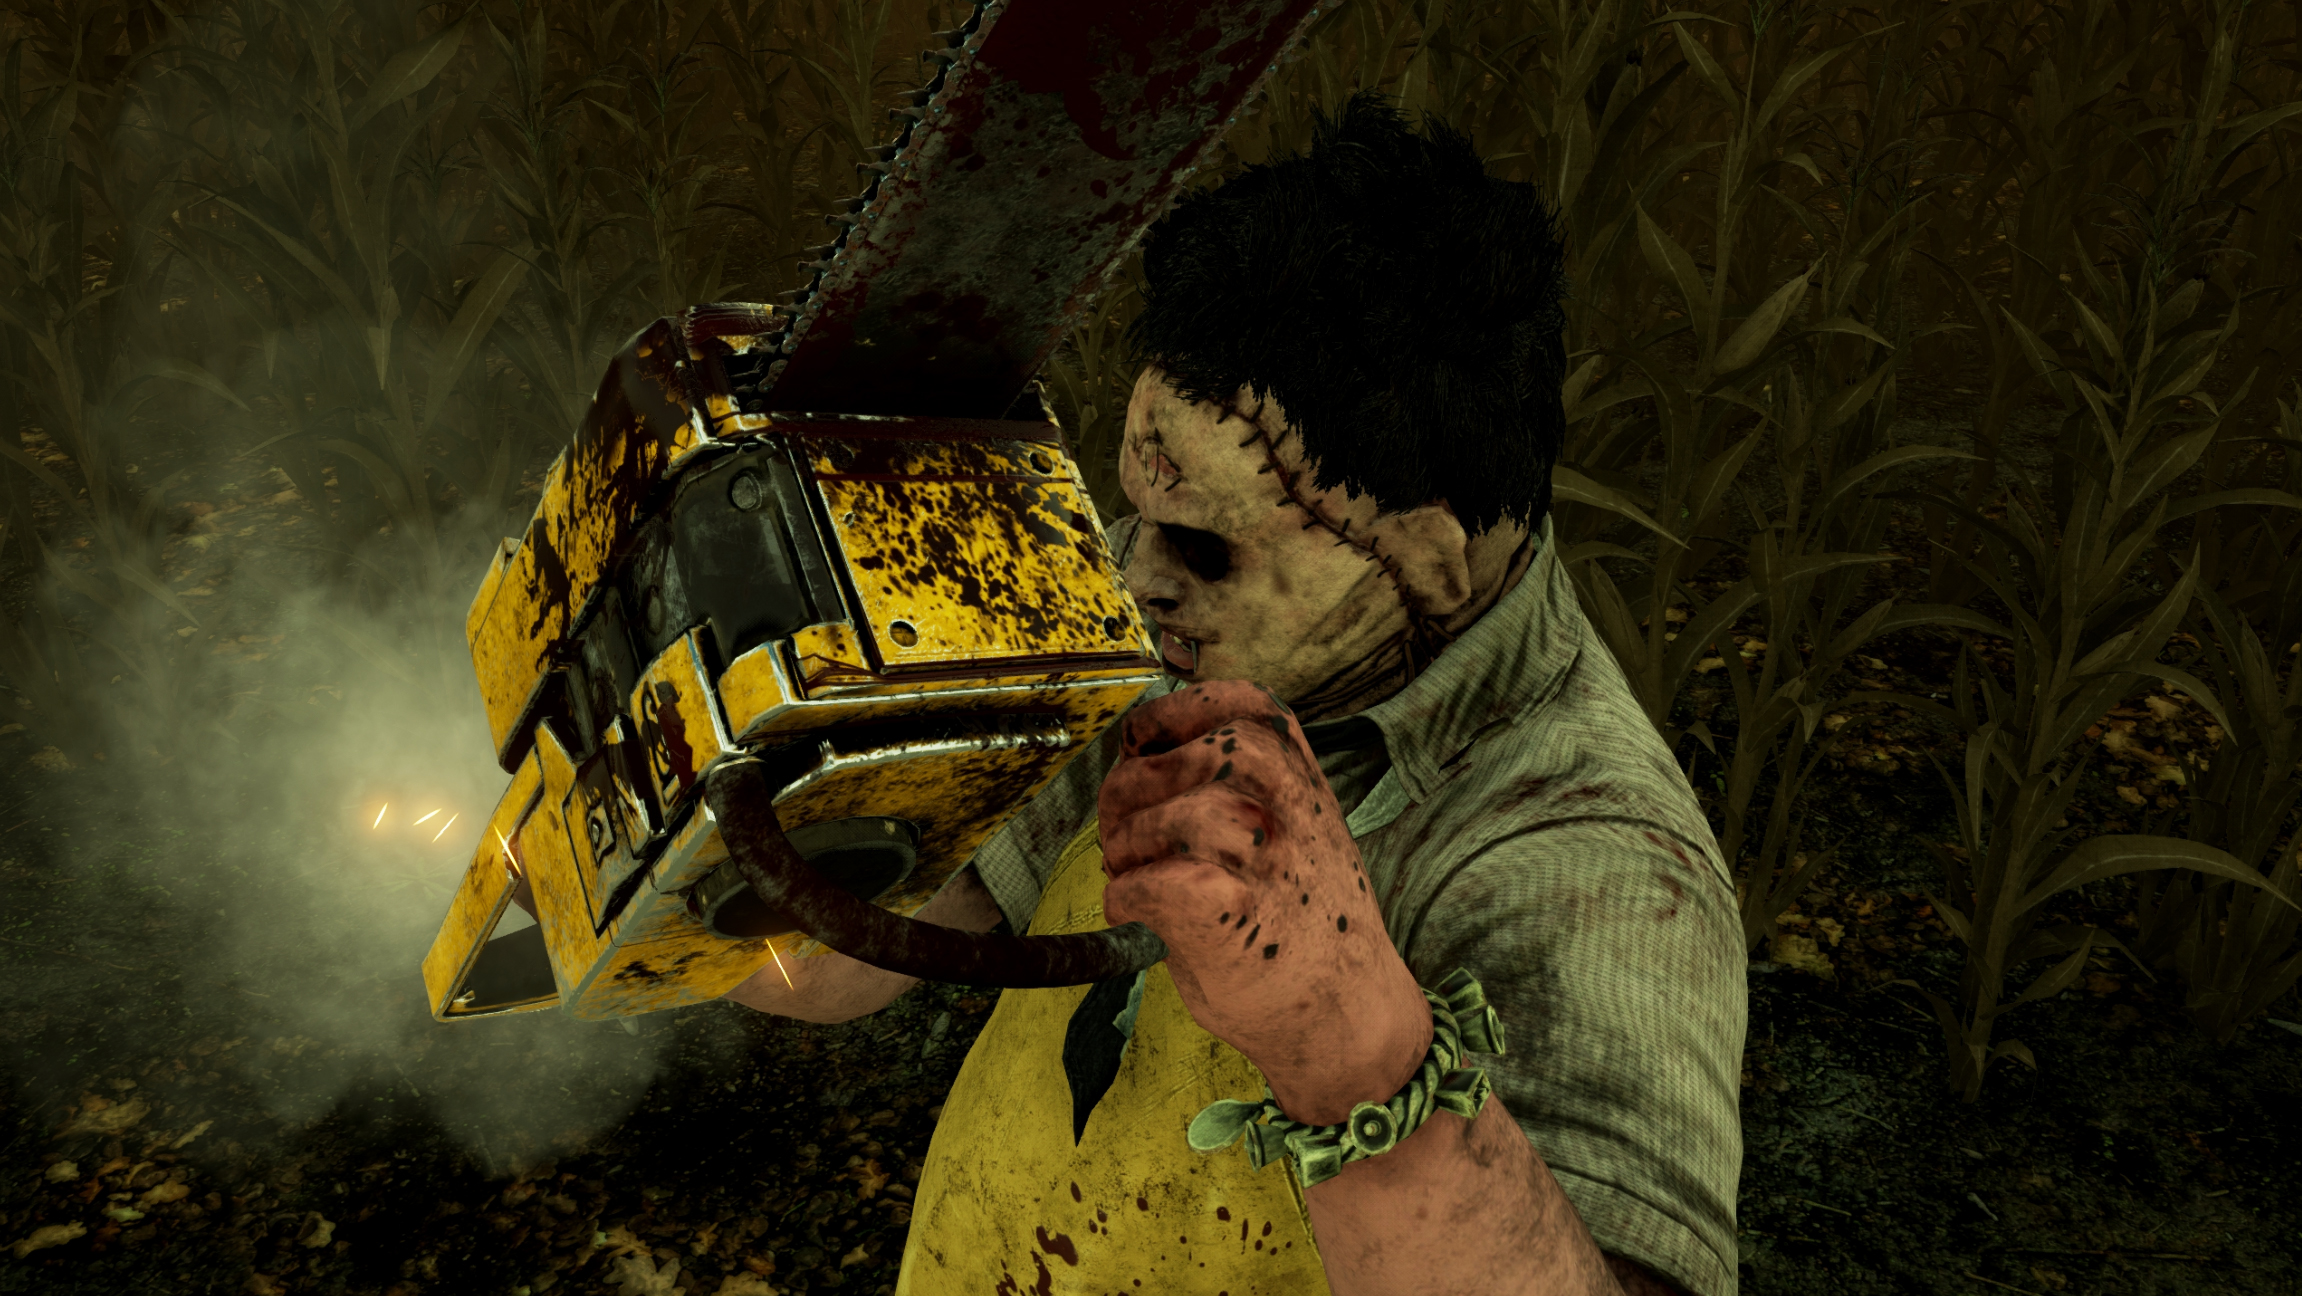 texas chainsaw massacre s leatherface is now terrorizing teens in